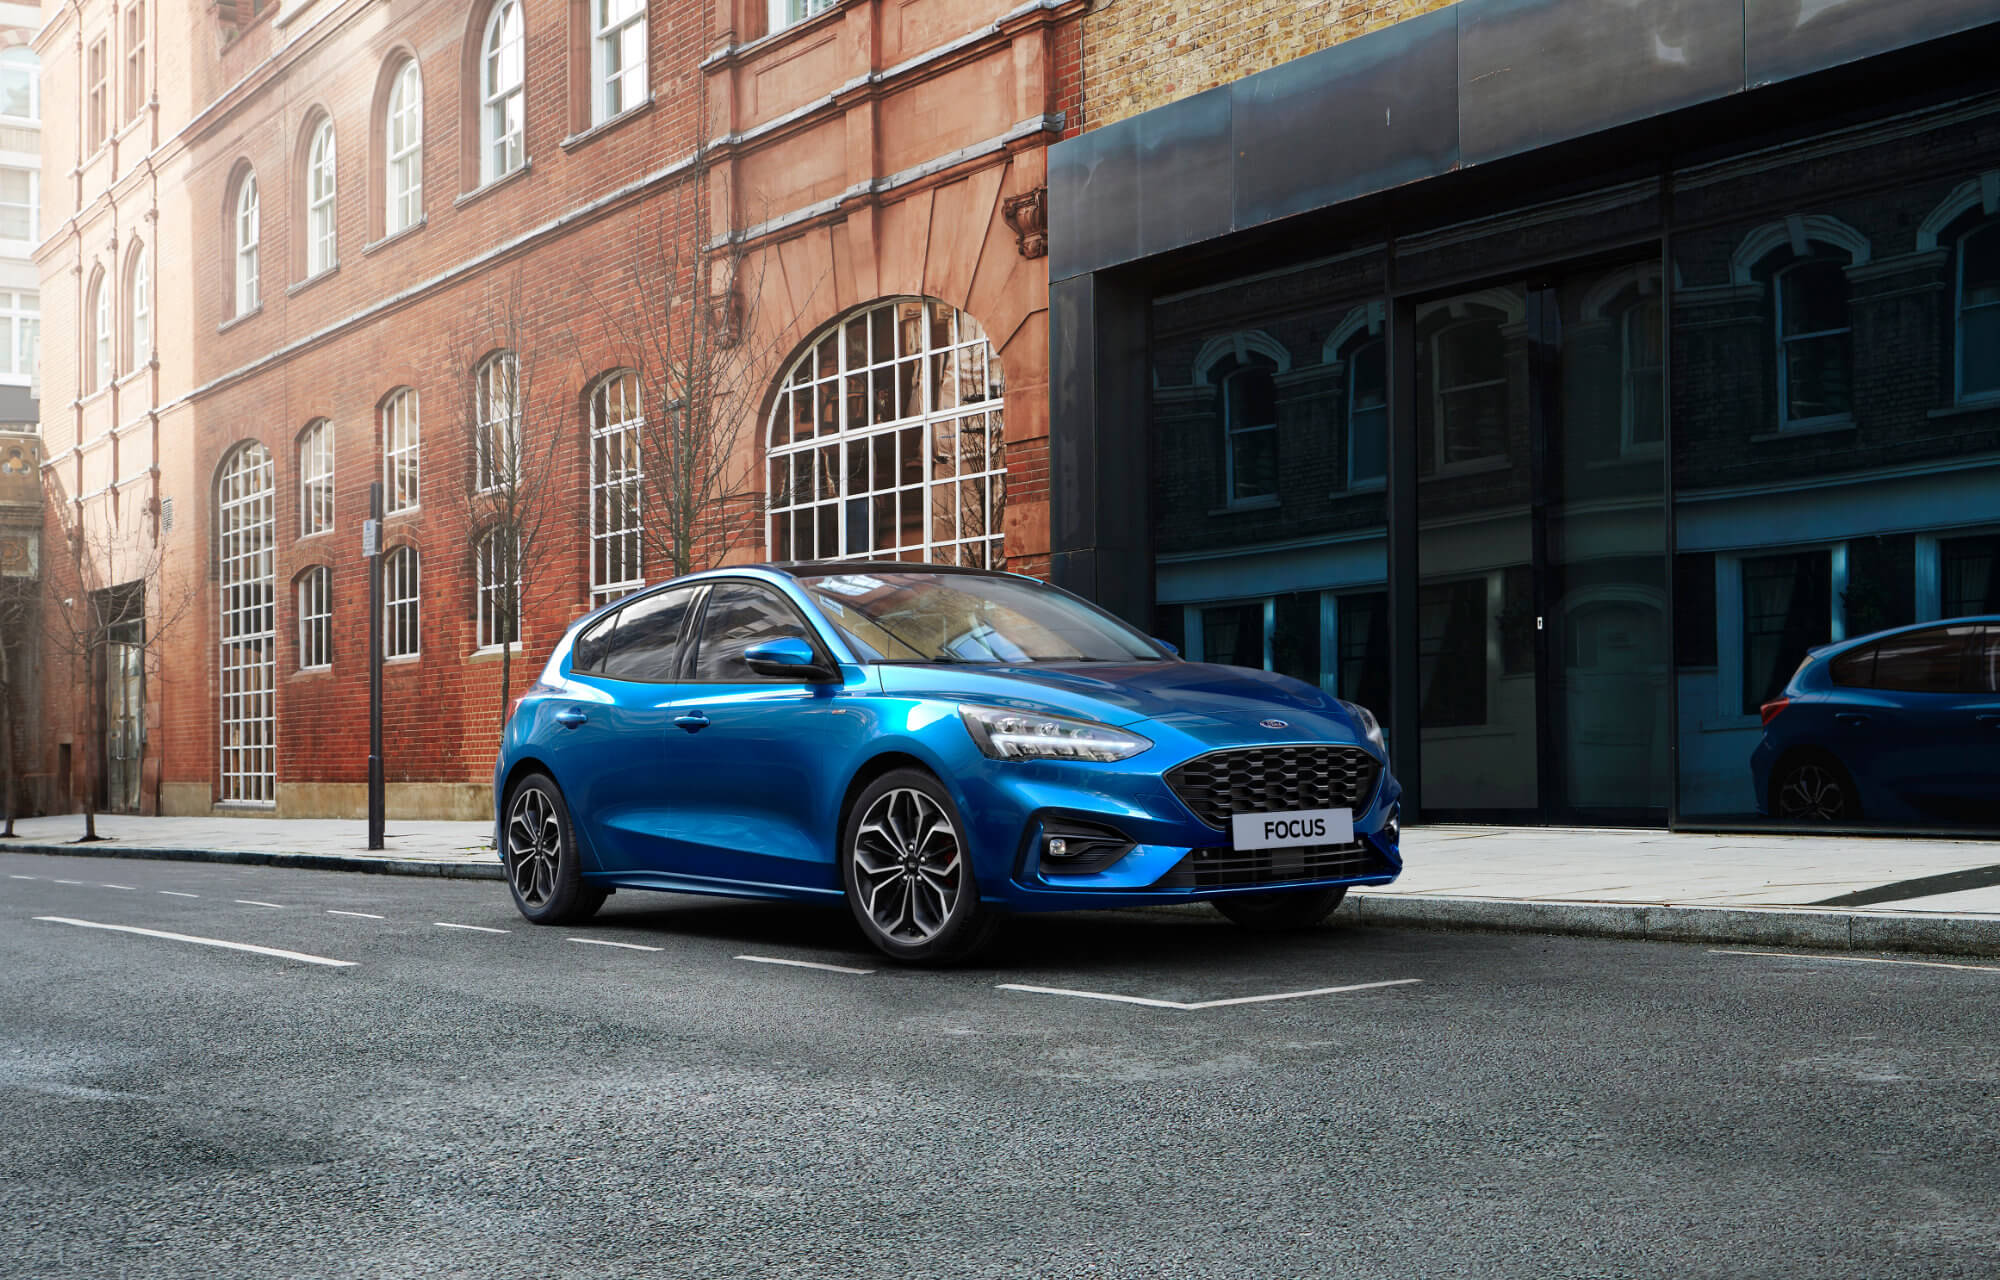 New Ford Focus EcoBoost Hybrid